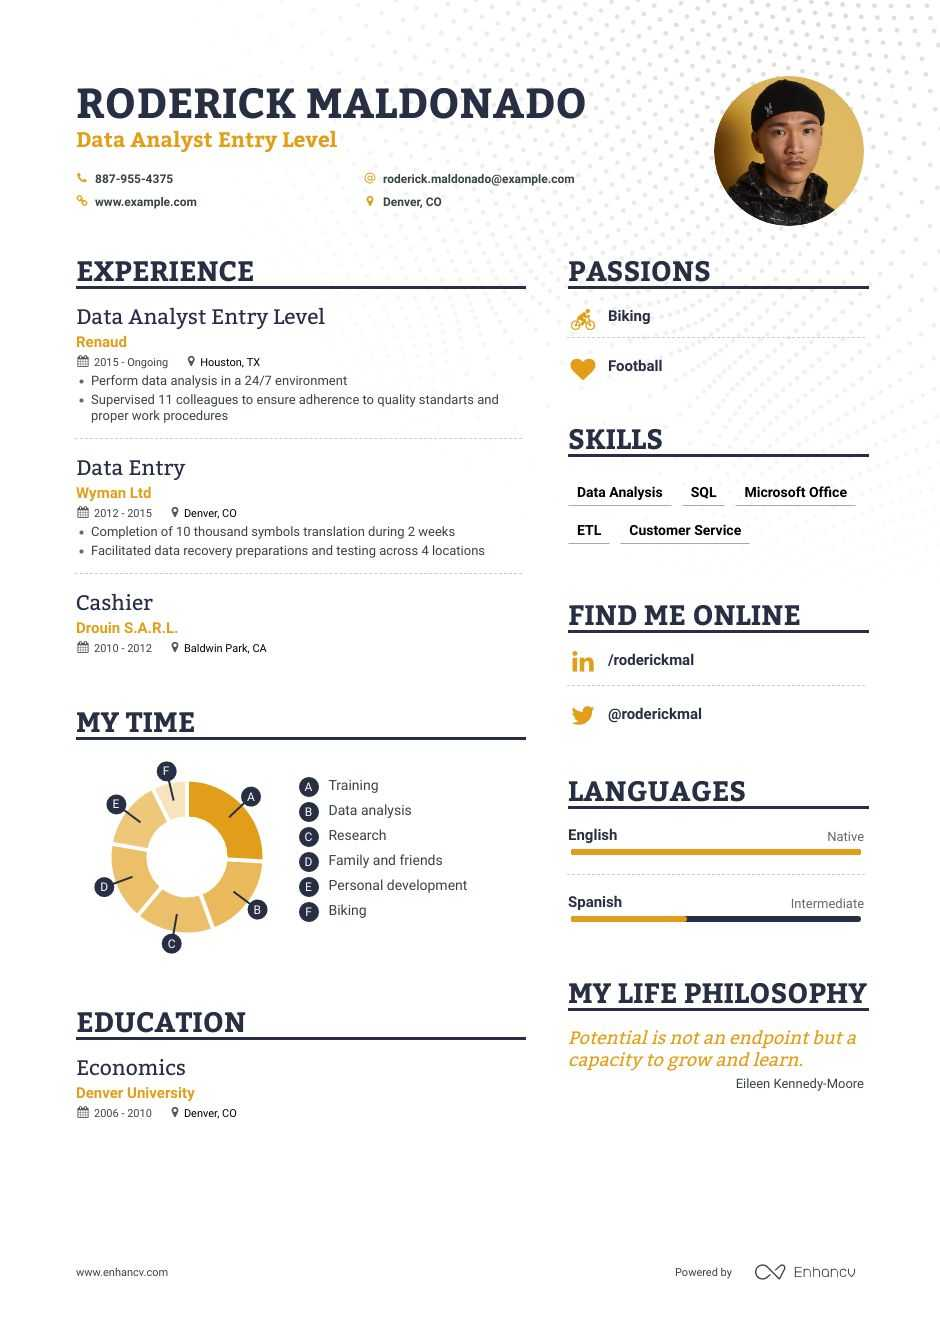 data analyst entry level resume examples inside to tips enhancv accountant duties and Resume Entry Level Data Analyst Resume